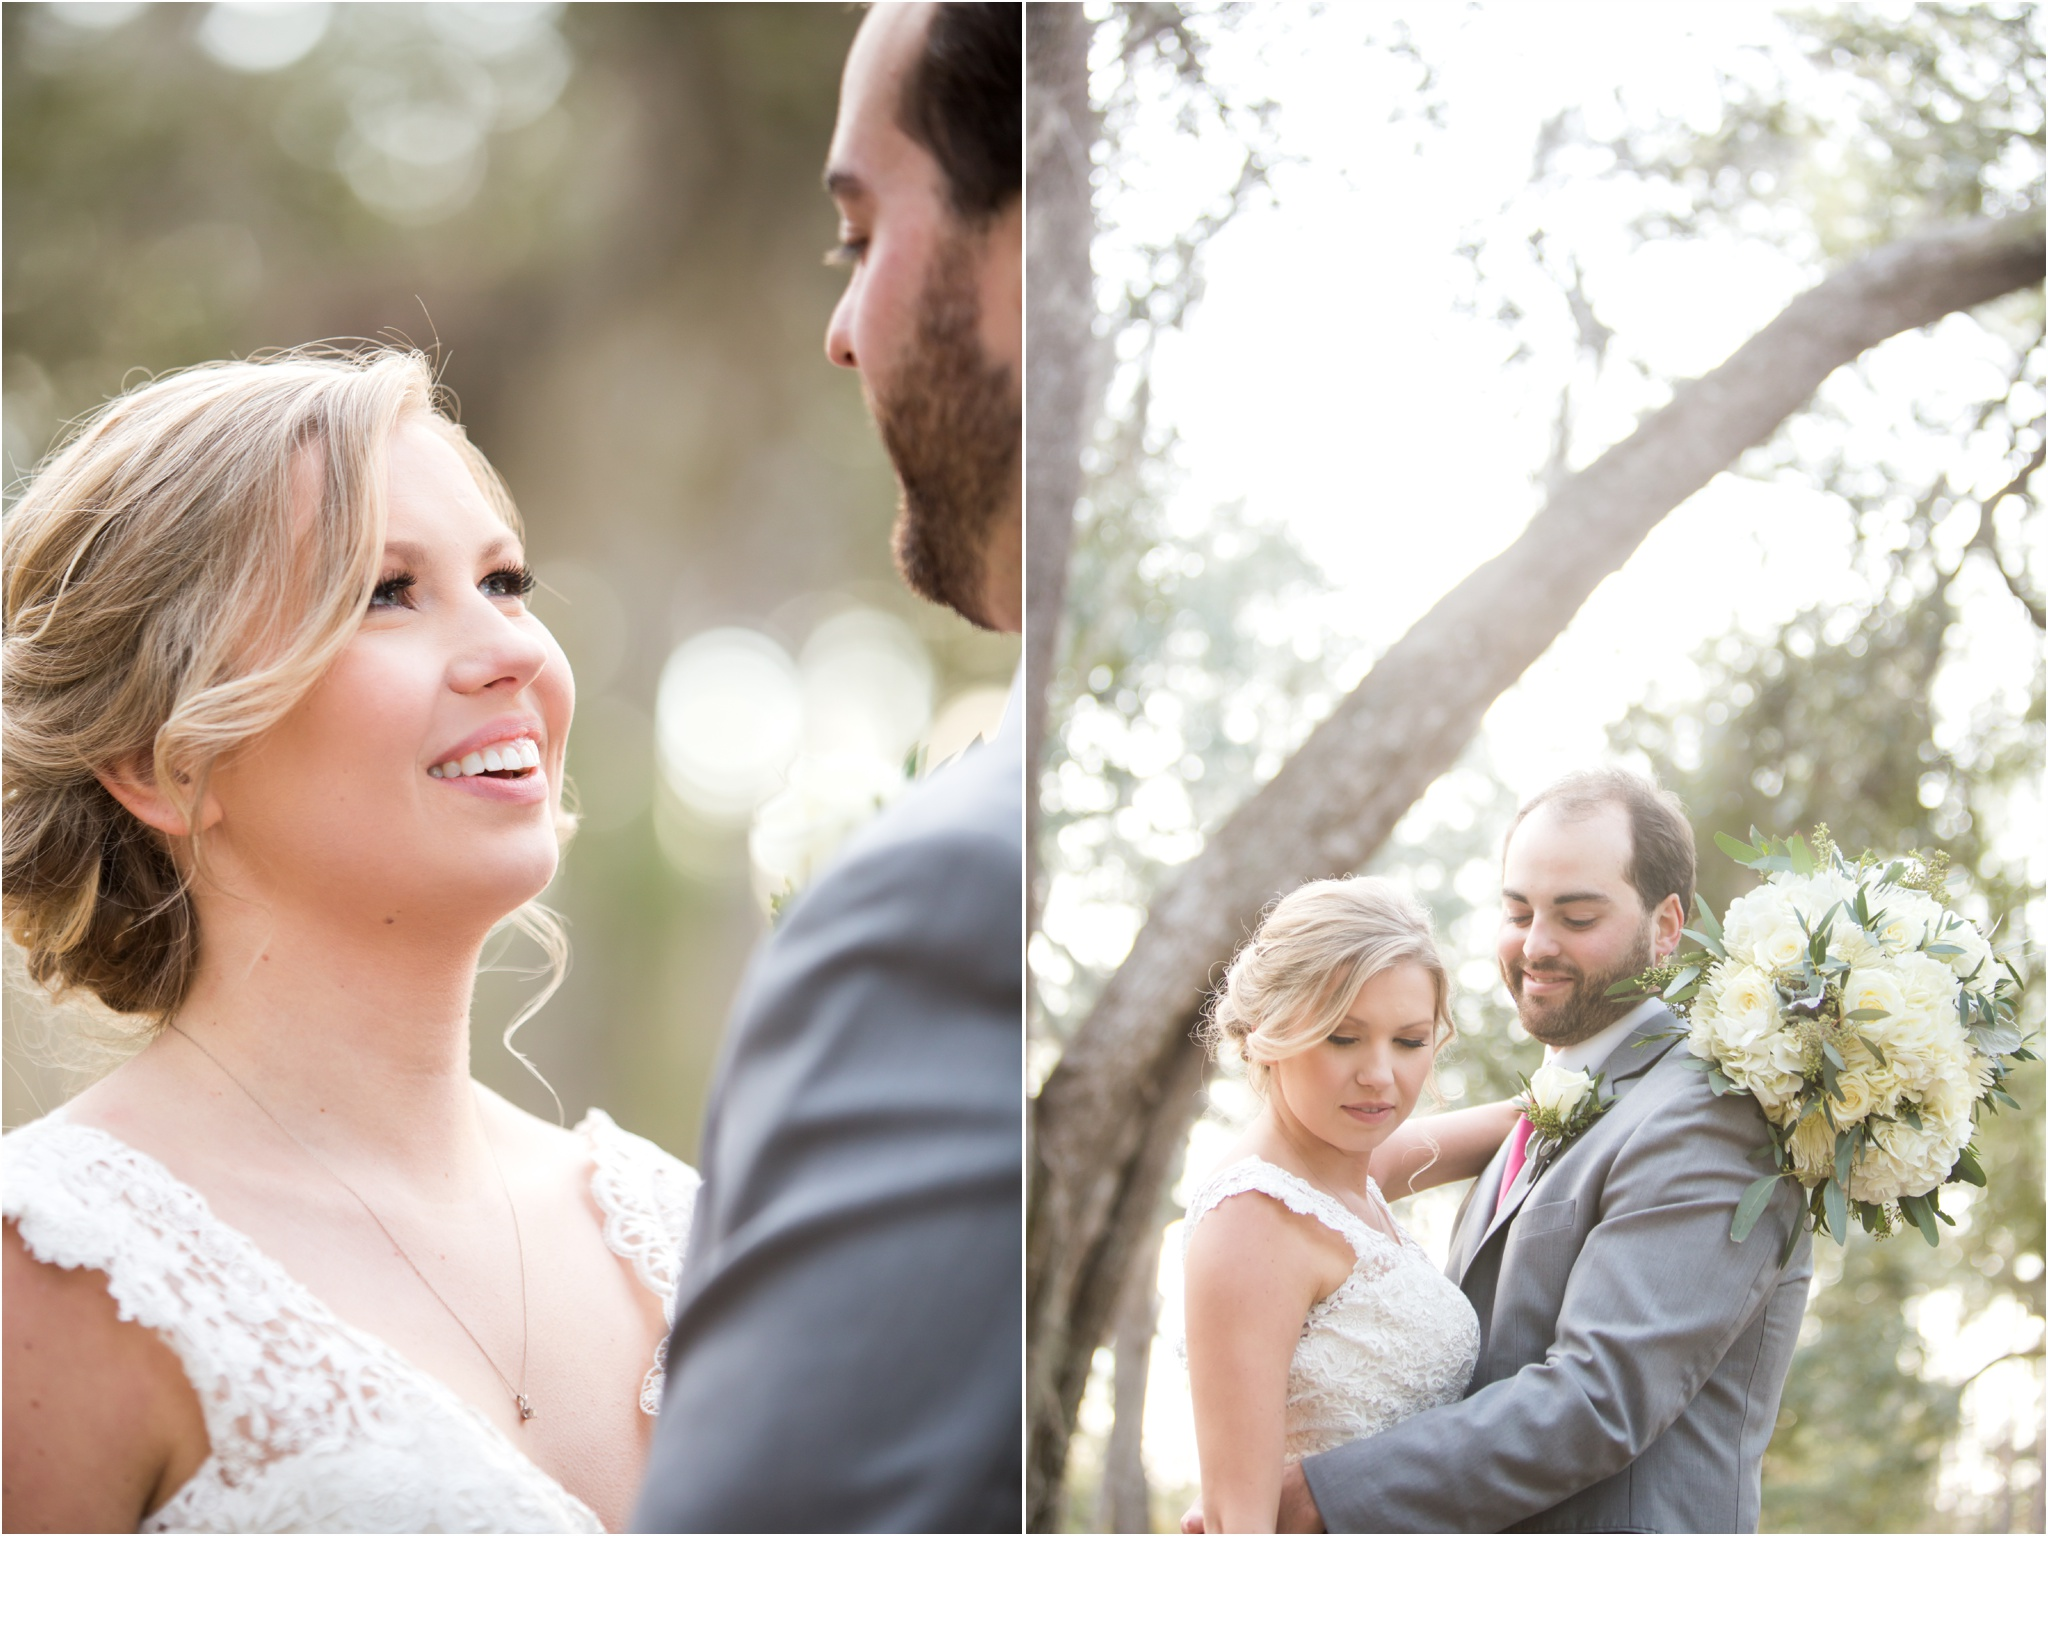 Rainey_Gregg_Photography_St._Simons_Island_Georgia_California_Wedding_Portrait_Photography_0495.jpg